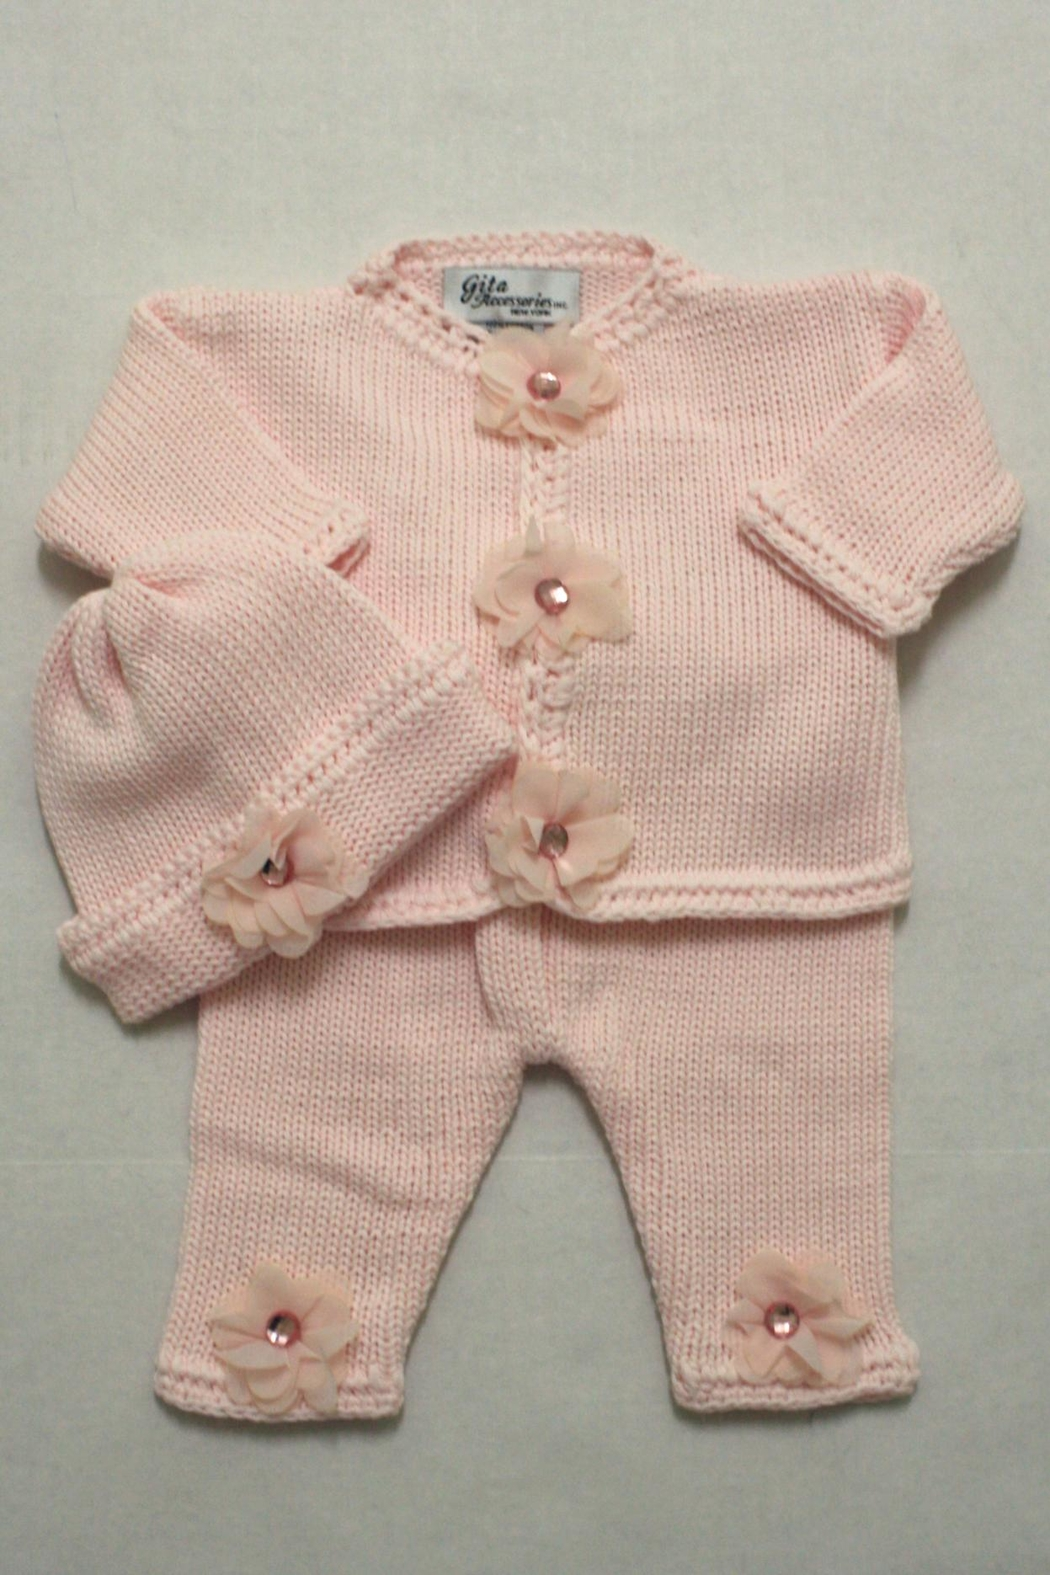 5403c9b3931f Gita Accesories Inc. Baby Cardigan Set from Ohio by Stork sLanding ...